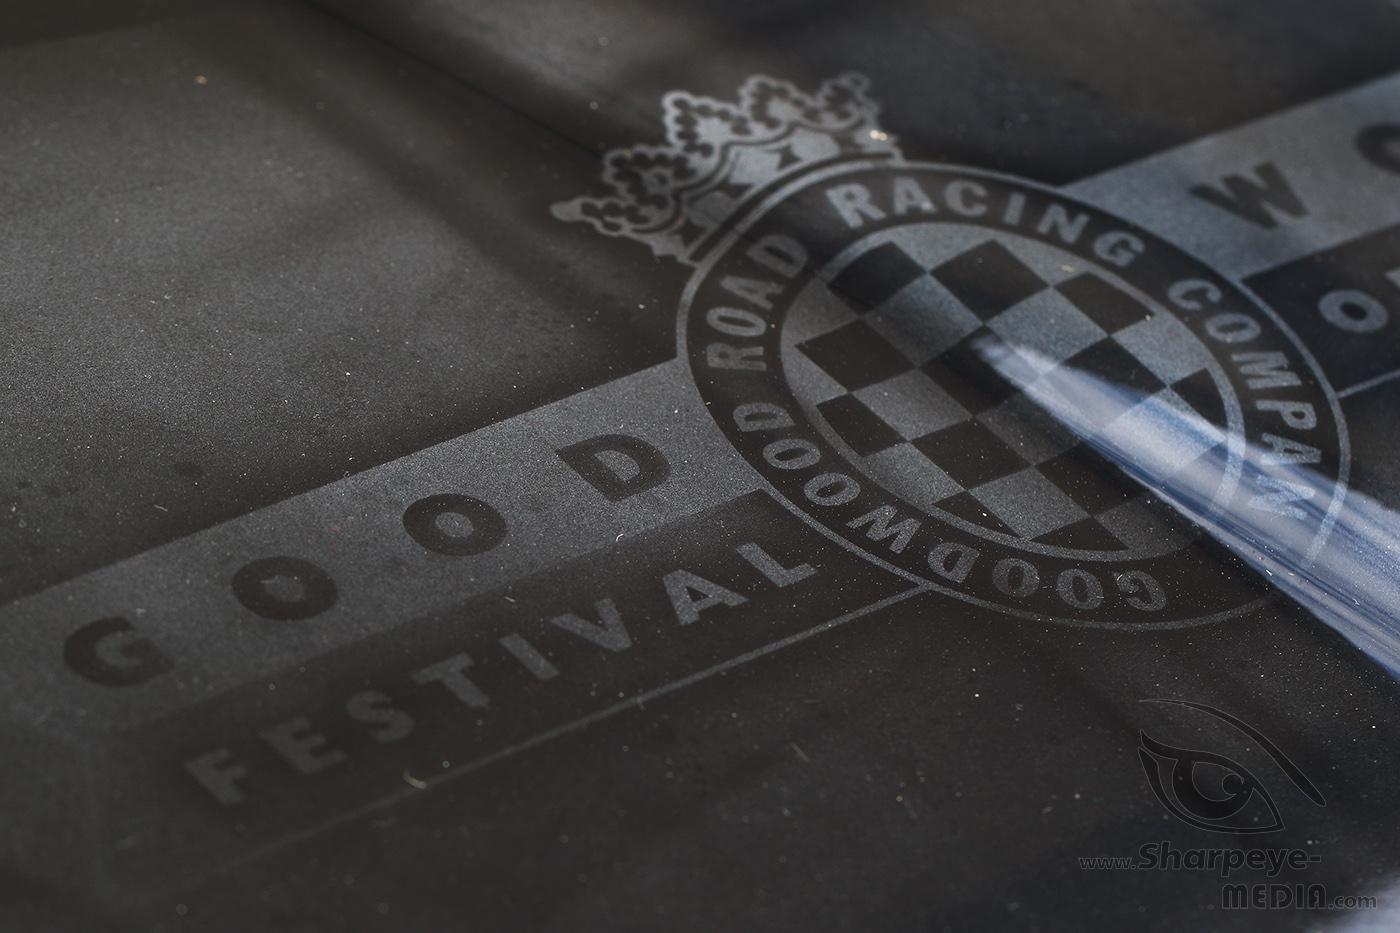 Bonnet of Maserati with Goodwood Festival of Speed logo